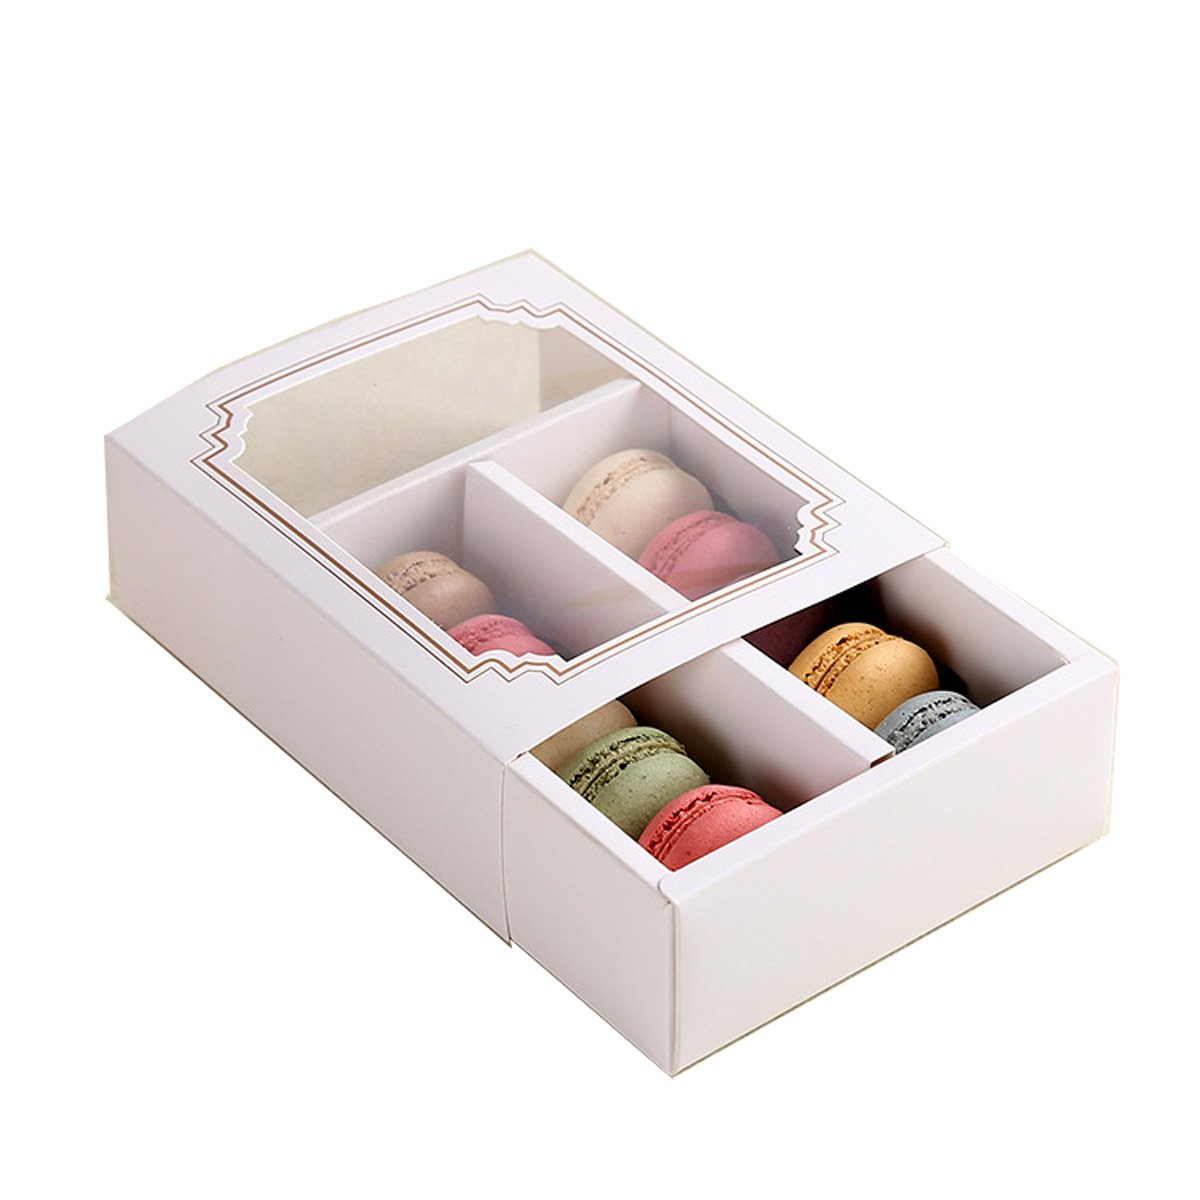 ihomecooker Macaron Boxes for Holds 10 Macarons chocolate biscuit cake (case of 200 ) (10 Macaron)